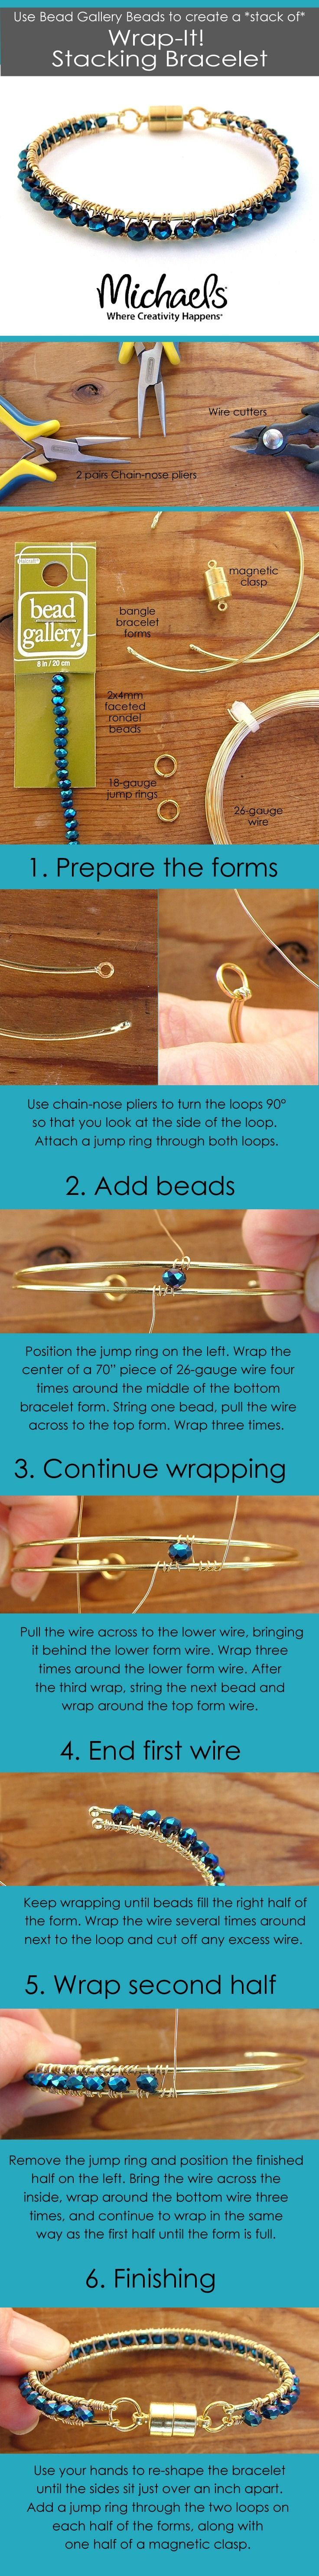 Use Bead Gallery Beads to create a stack of Wrap-it Stacking Bracelet. Available at your local Michaels Store